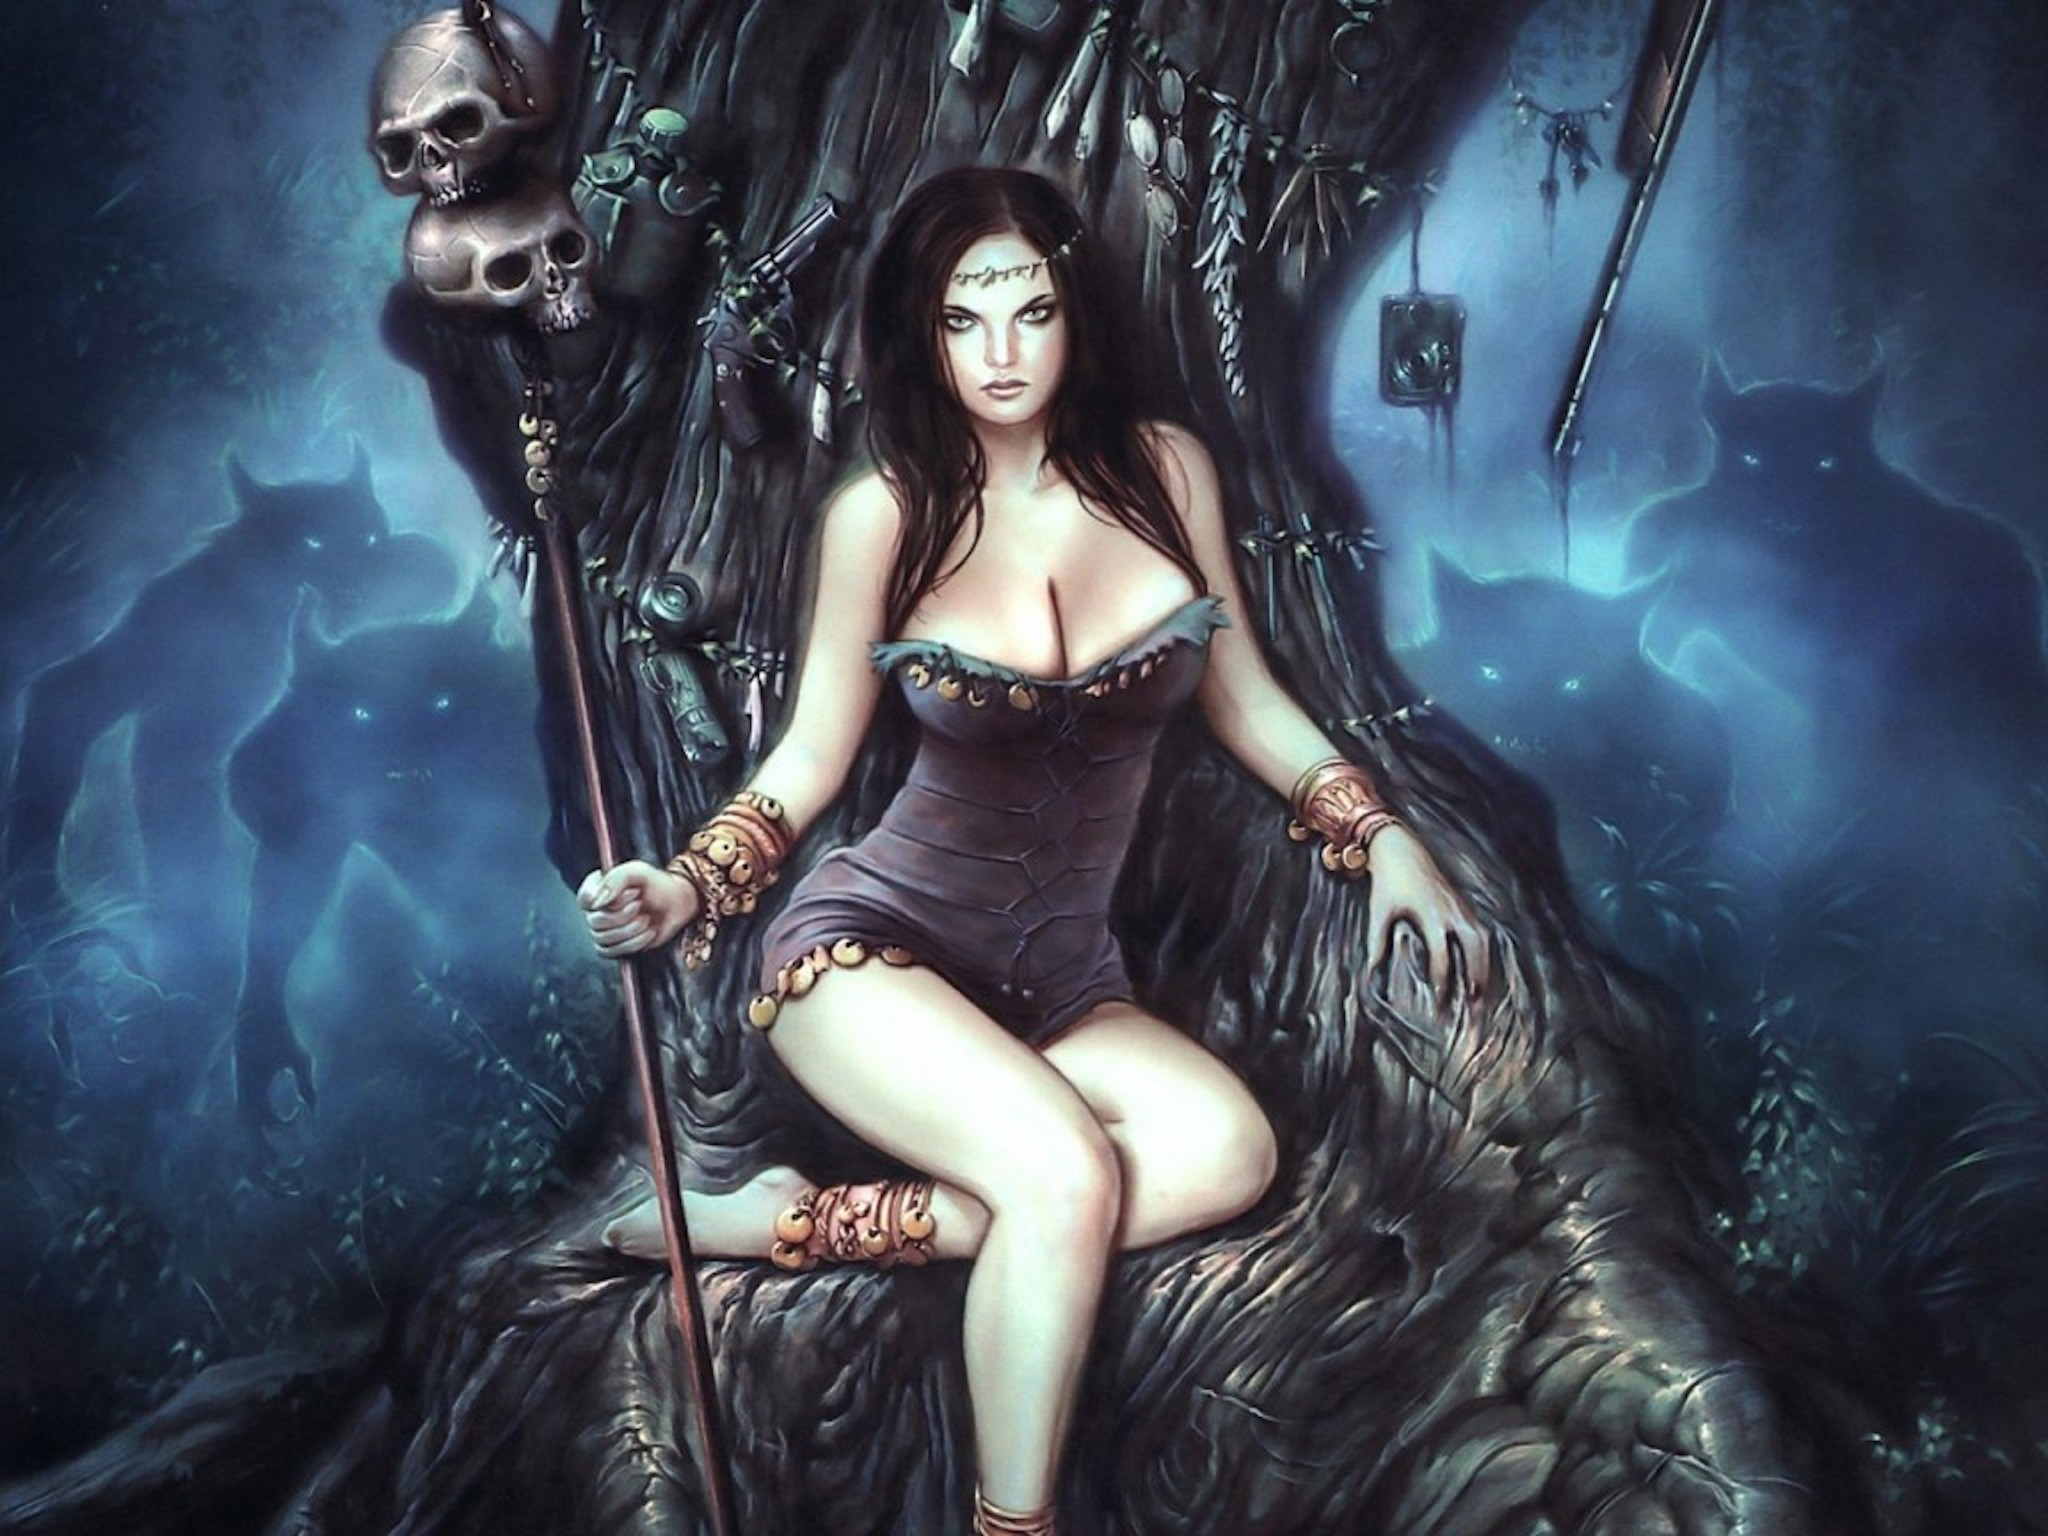 dark woman fantasy wallpaper free hd downloads